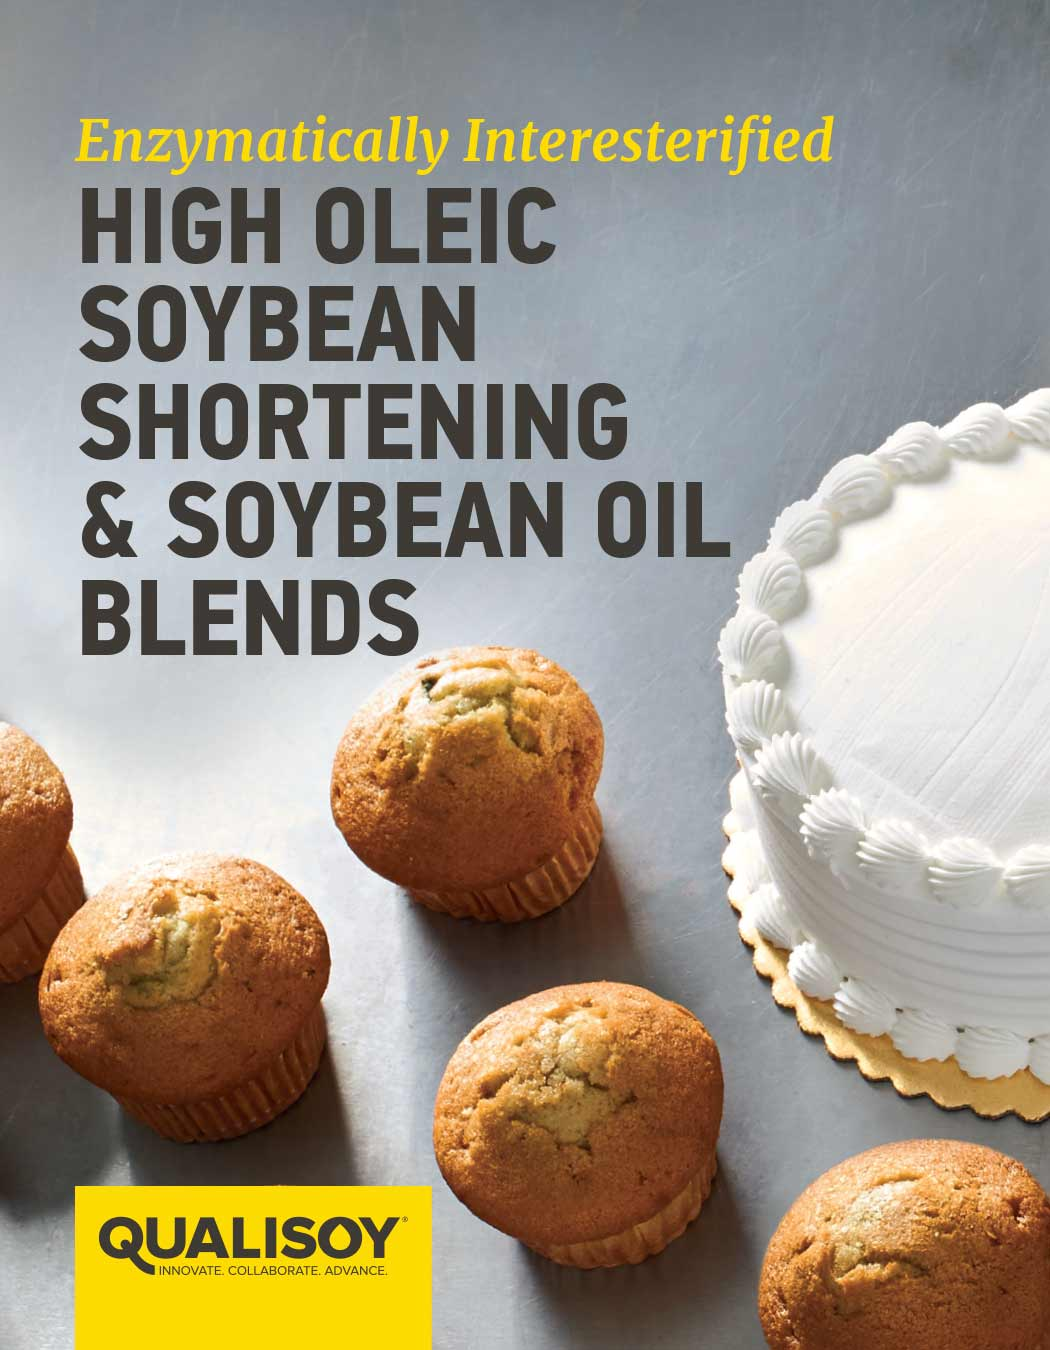 Enzymatically Interesterified High Oleic Soybean Shortening & Soybean Oil Blends